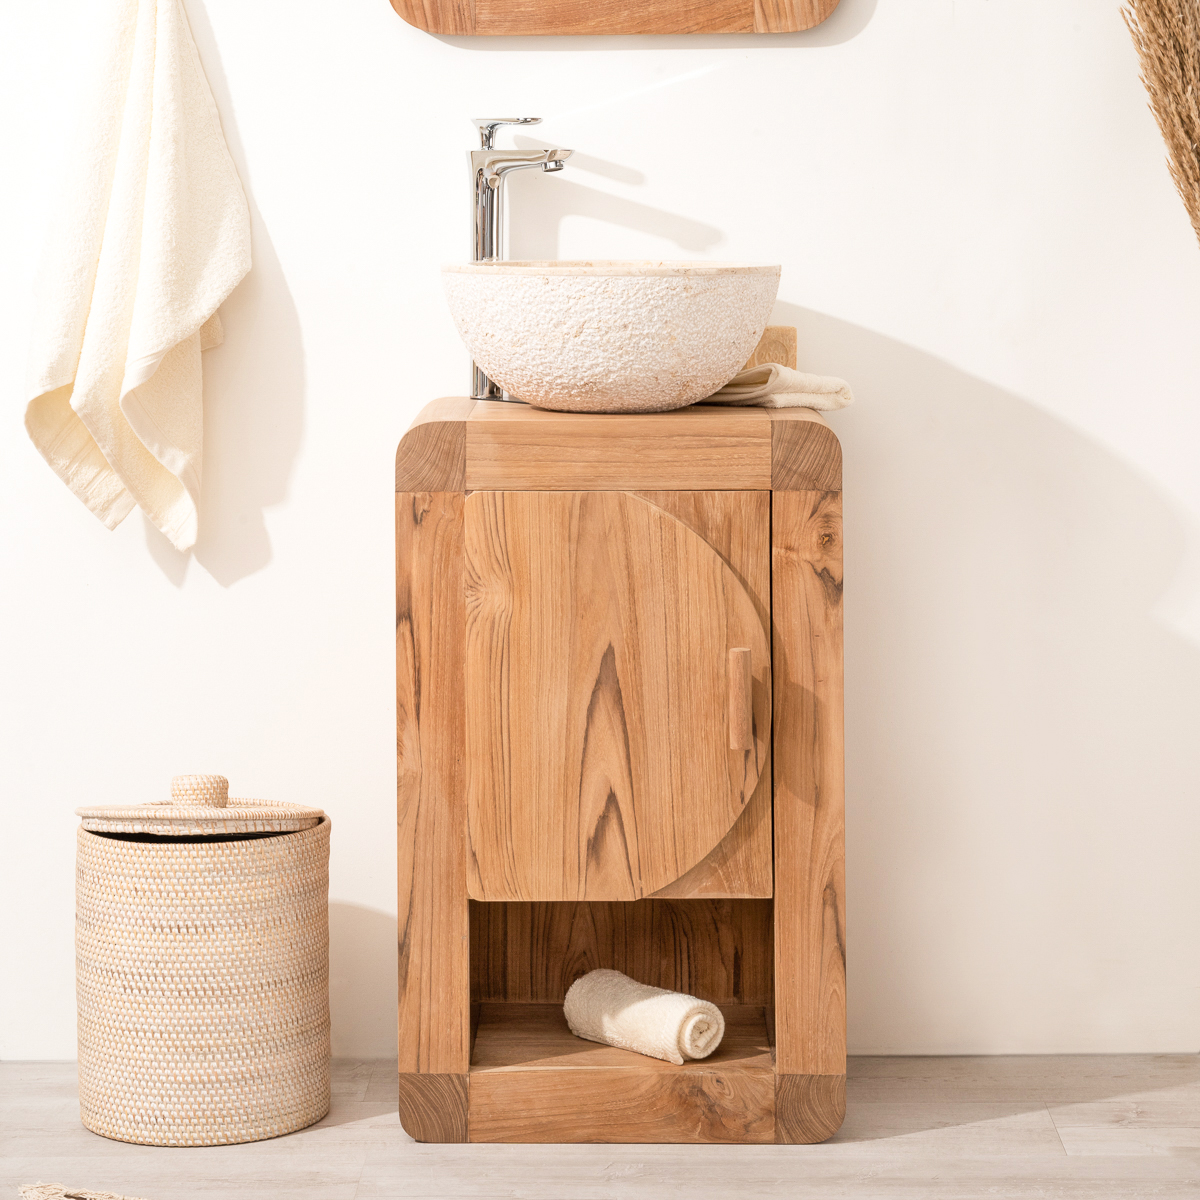 Meuble sous vasque simple vasque en bois teck massif contemporain rectangle naturel l for Meuble deco salle de bain